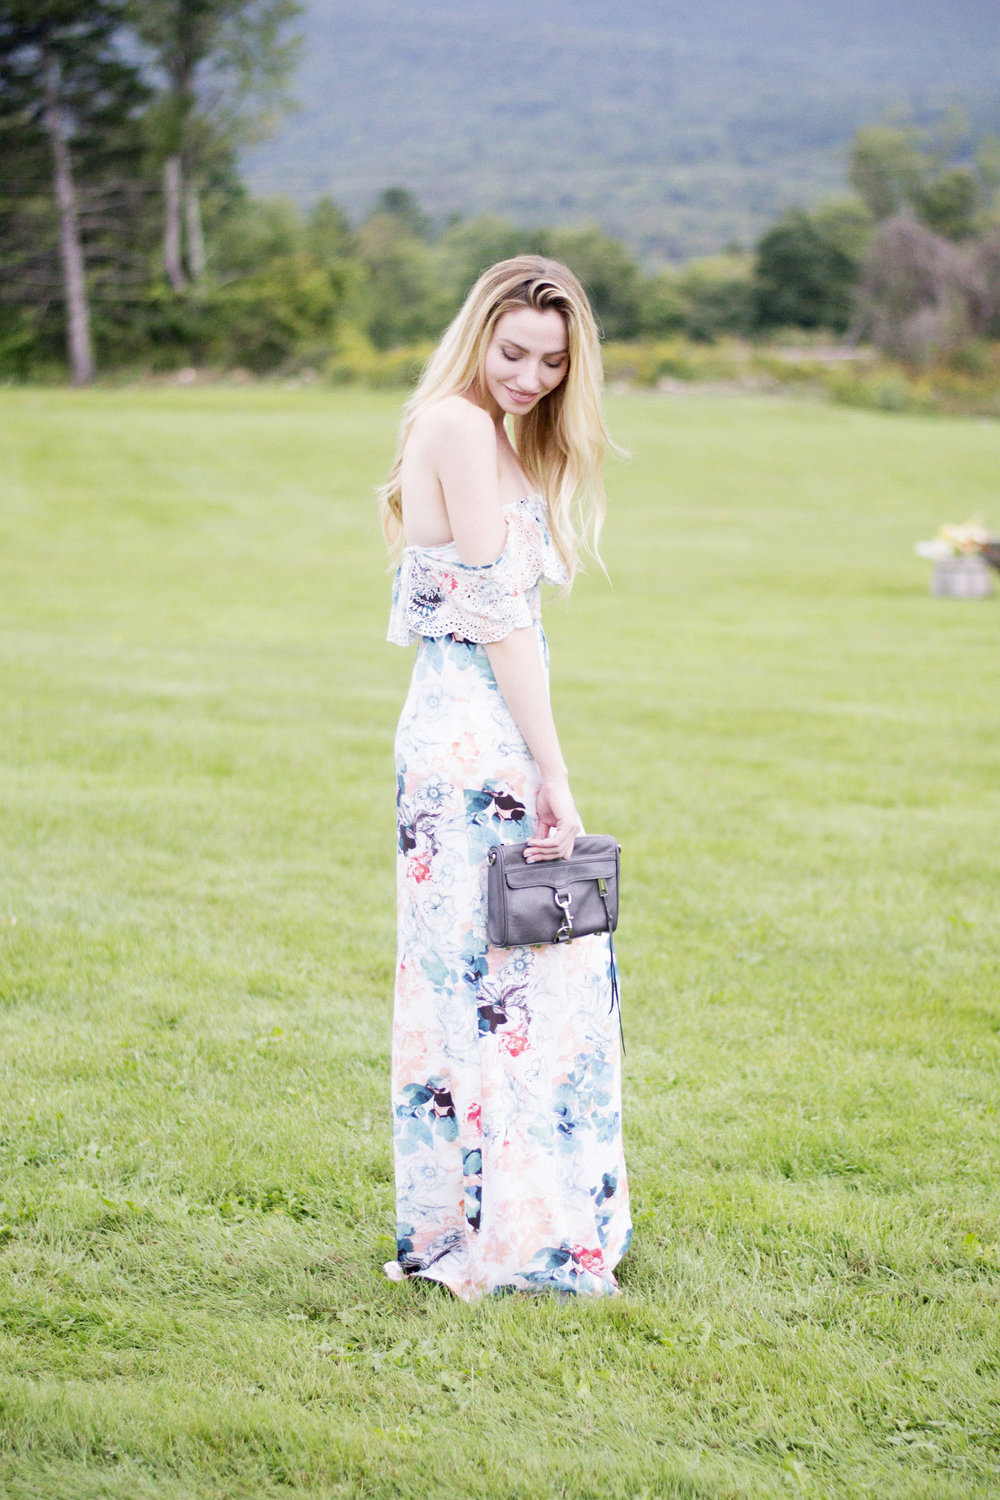 Floral Off Shoulder Maxi Dress (via Chic Now)